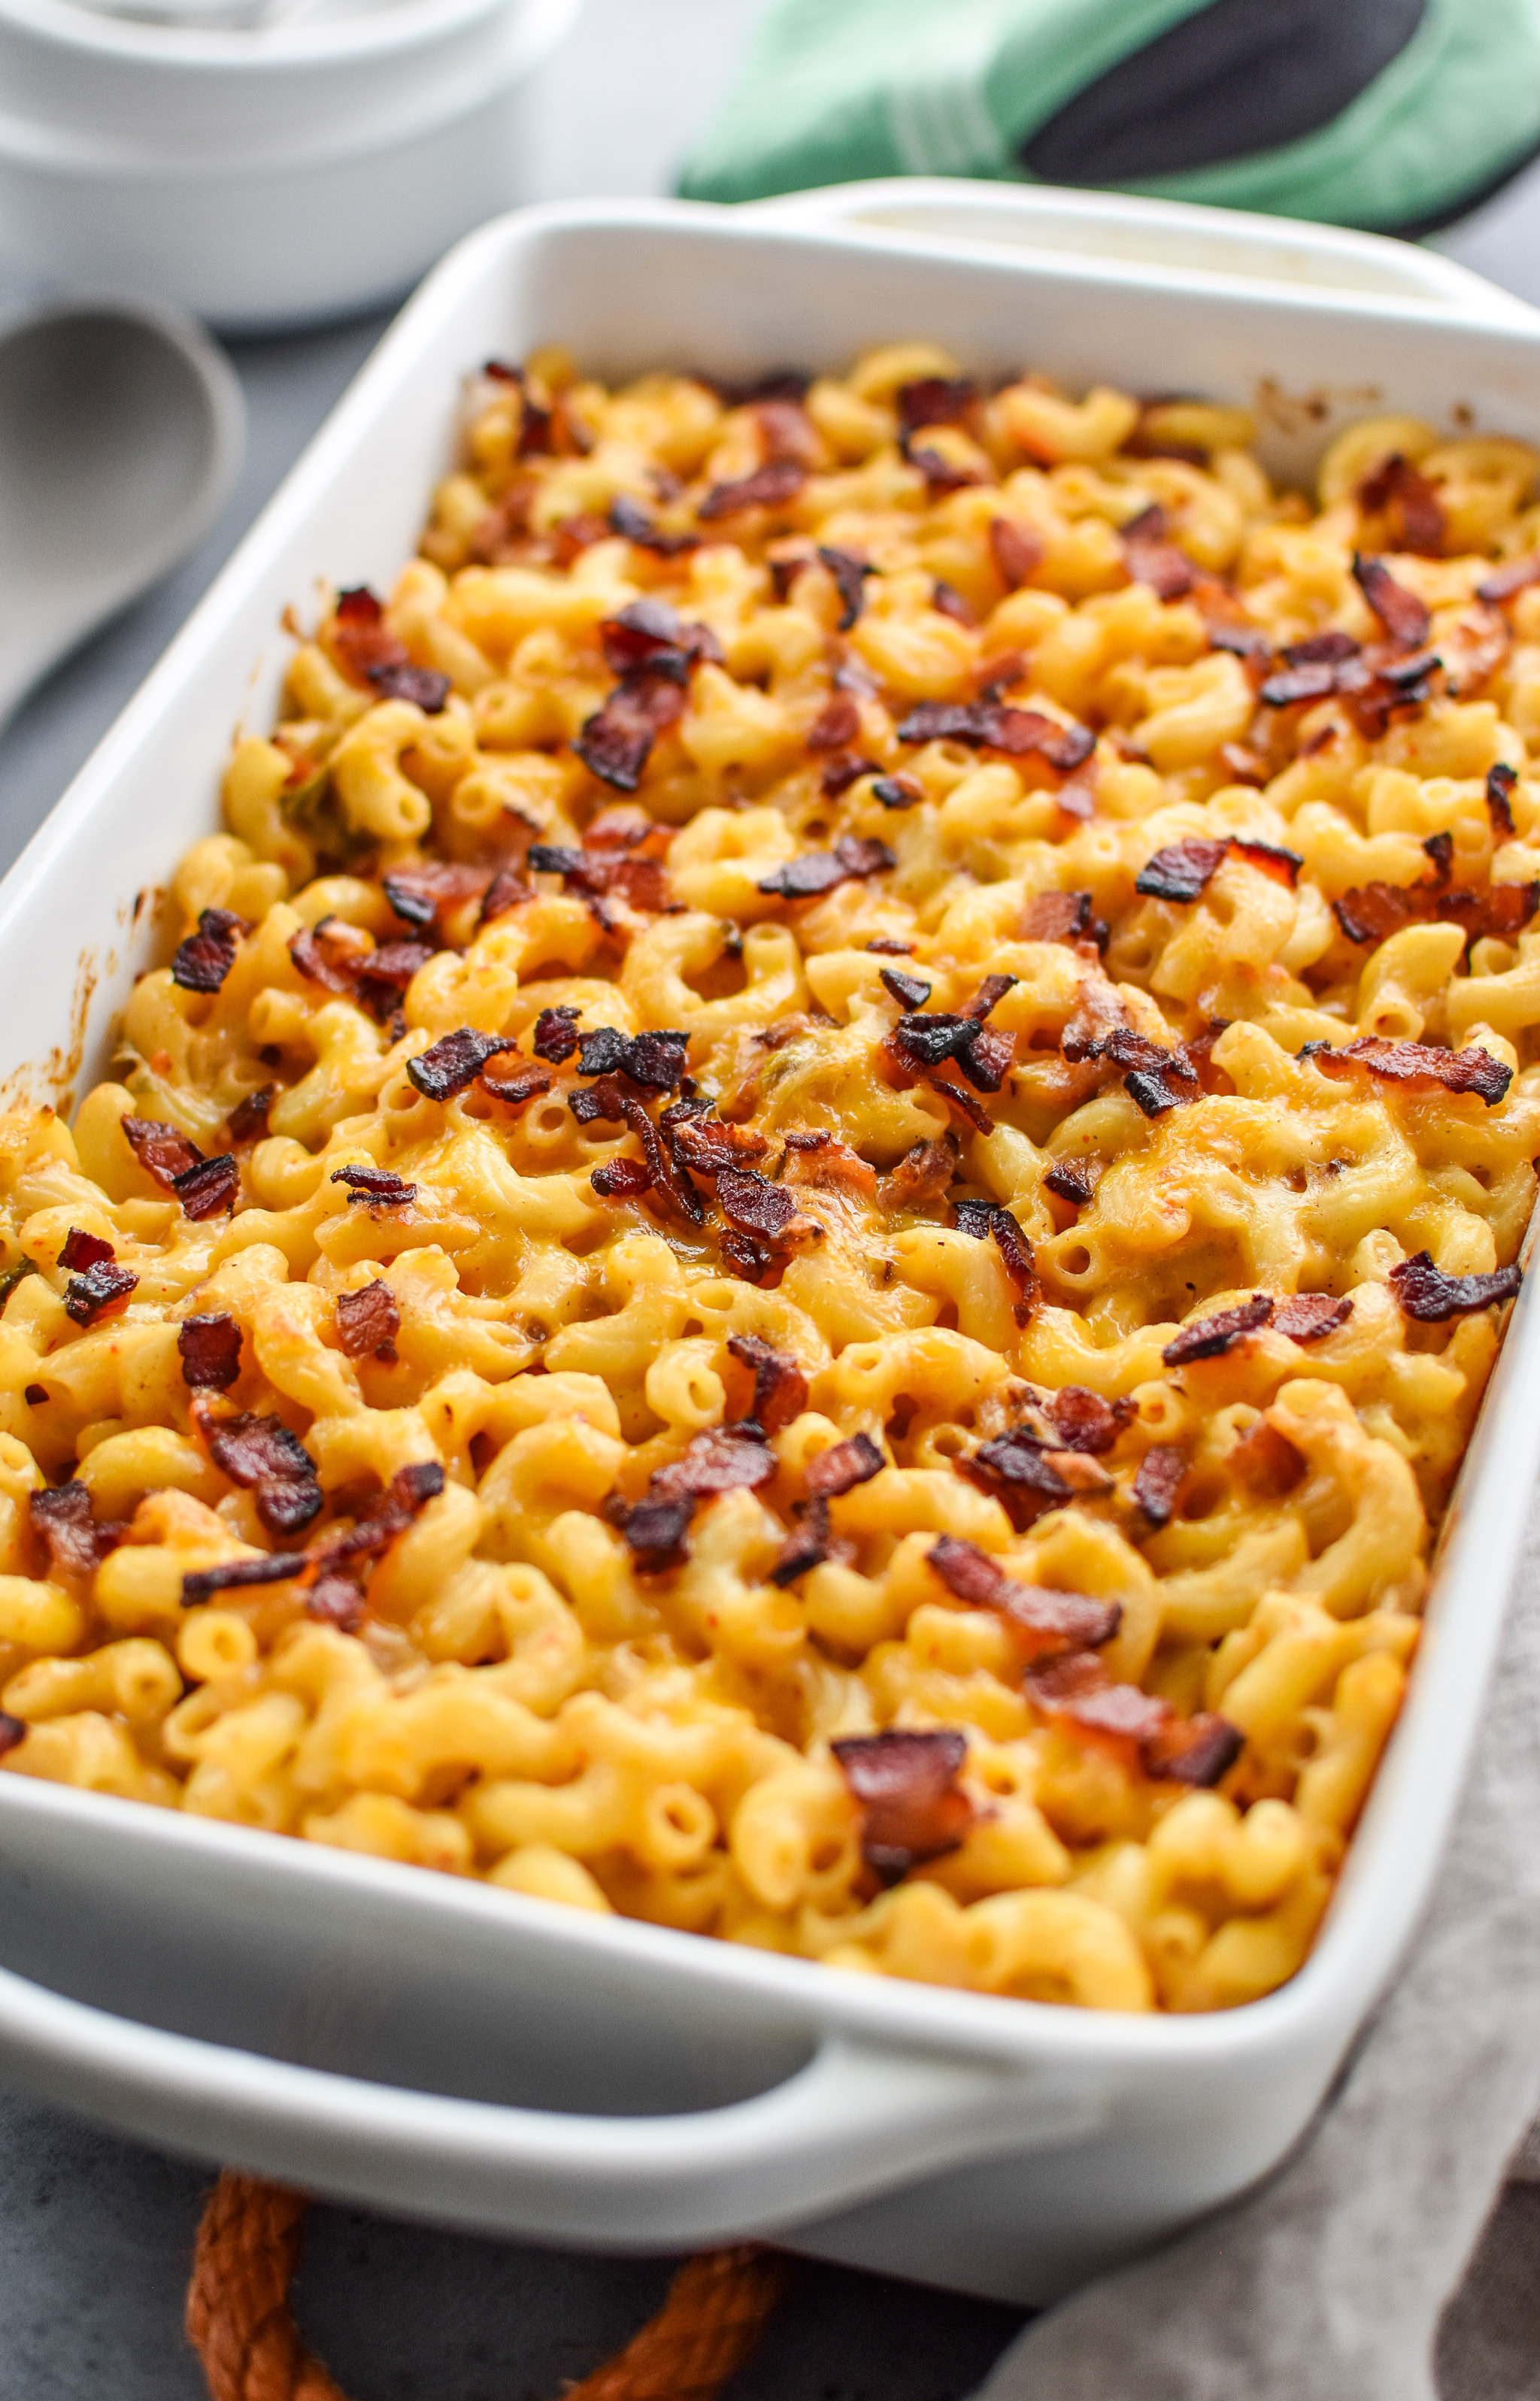 Kimchi and bacon greek yogurt macaroni and cheese fresh from the oven ready for dinner